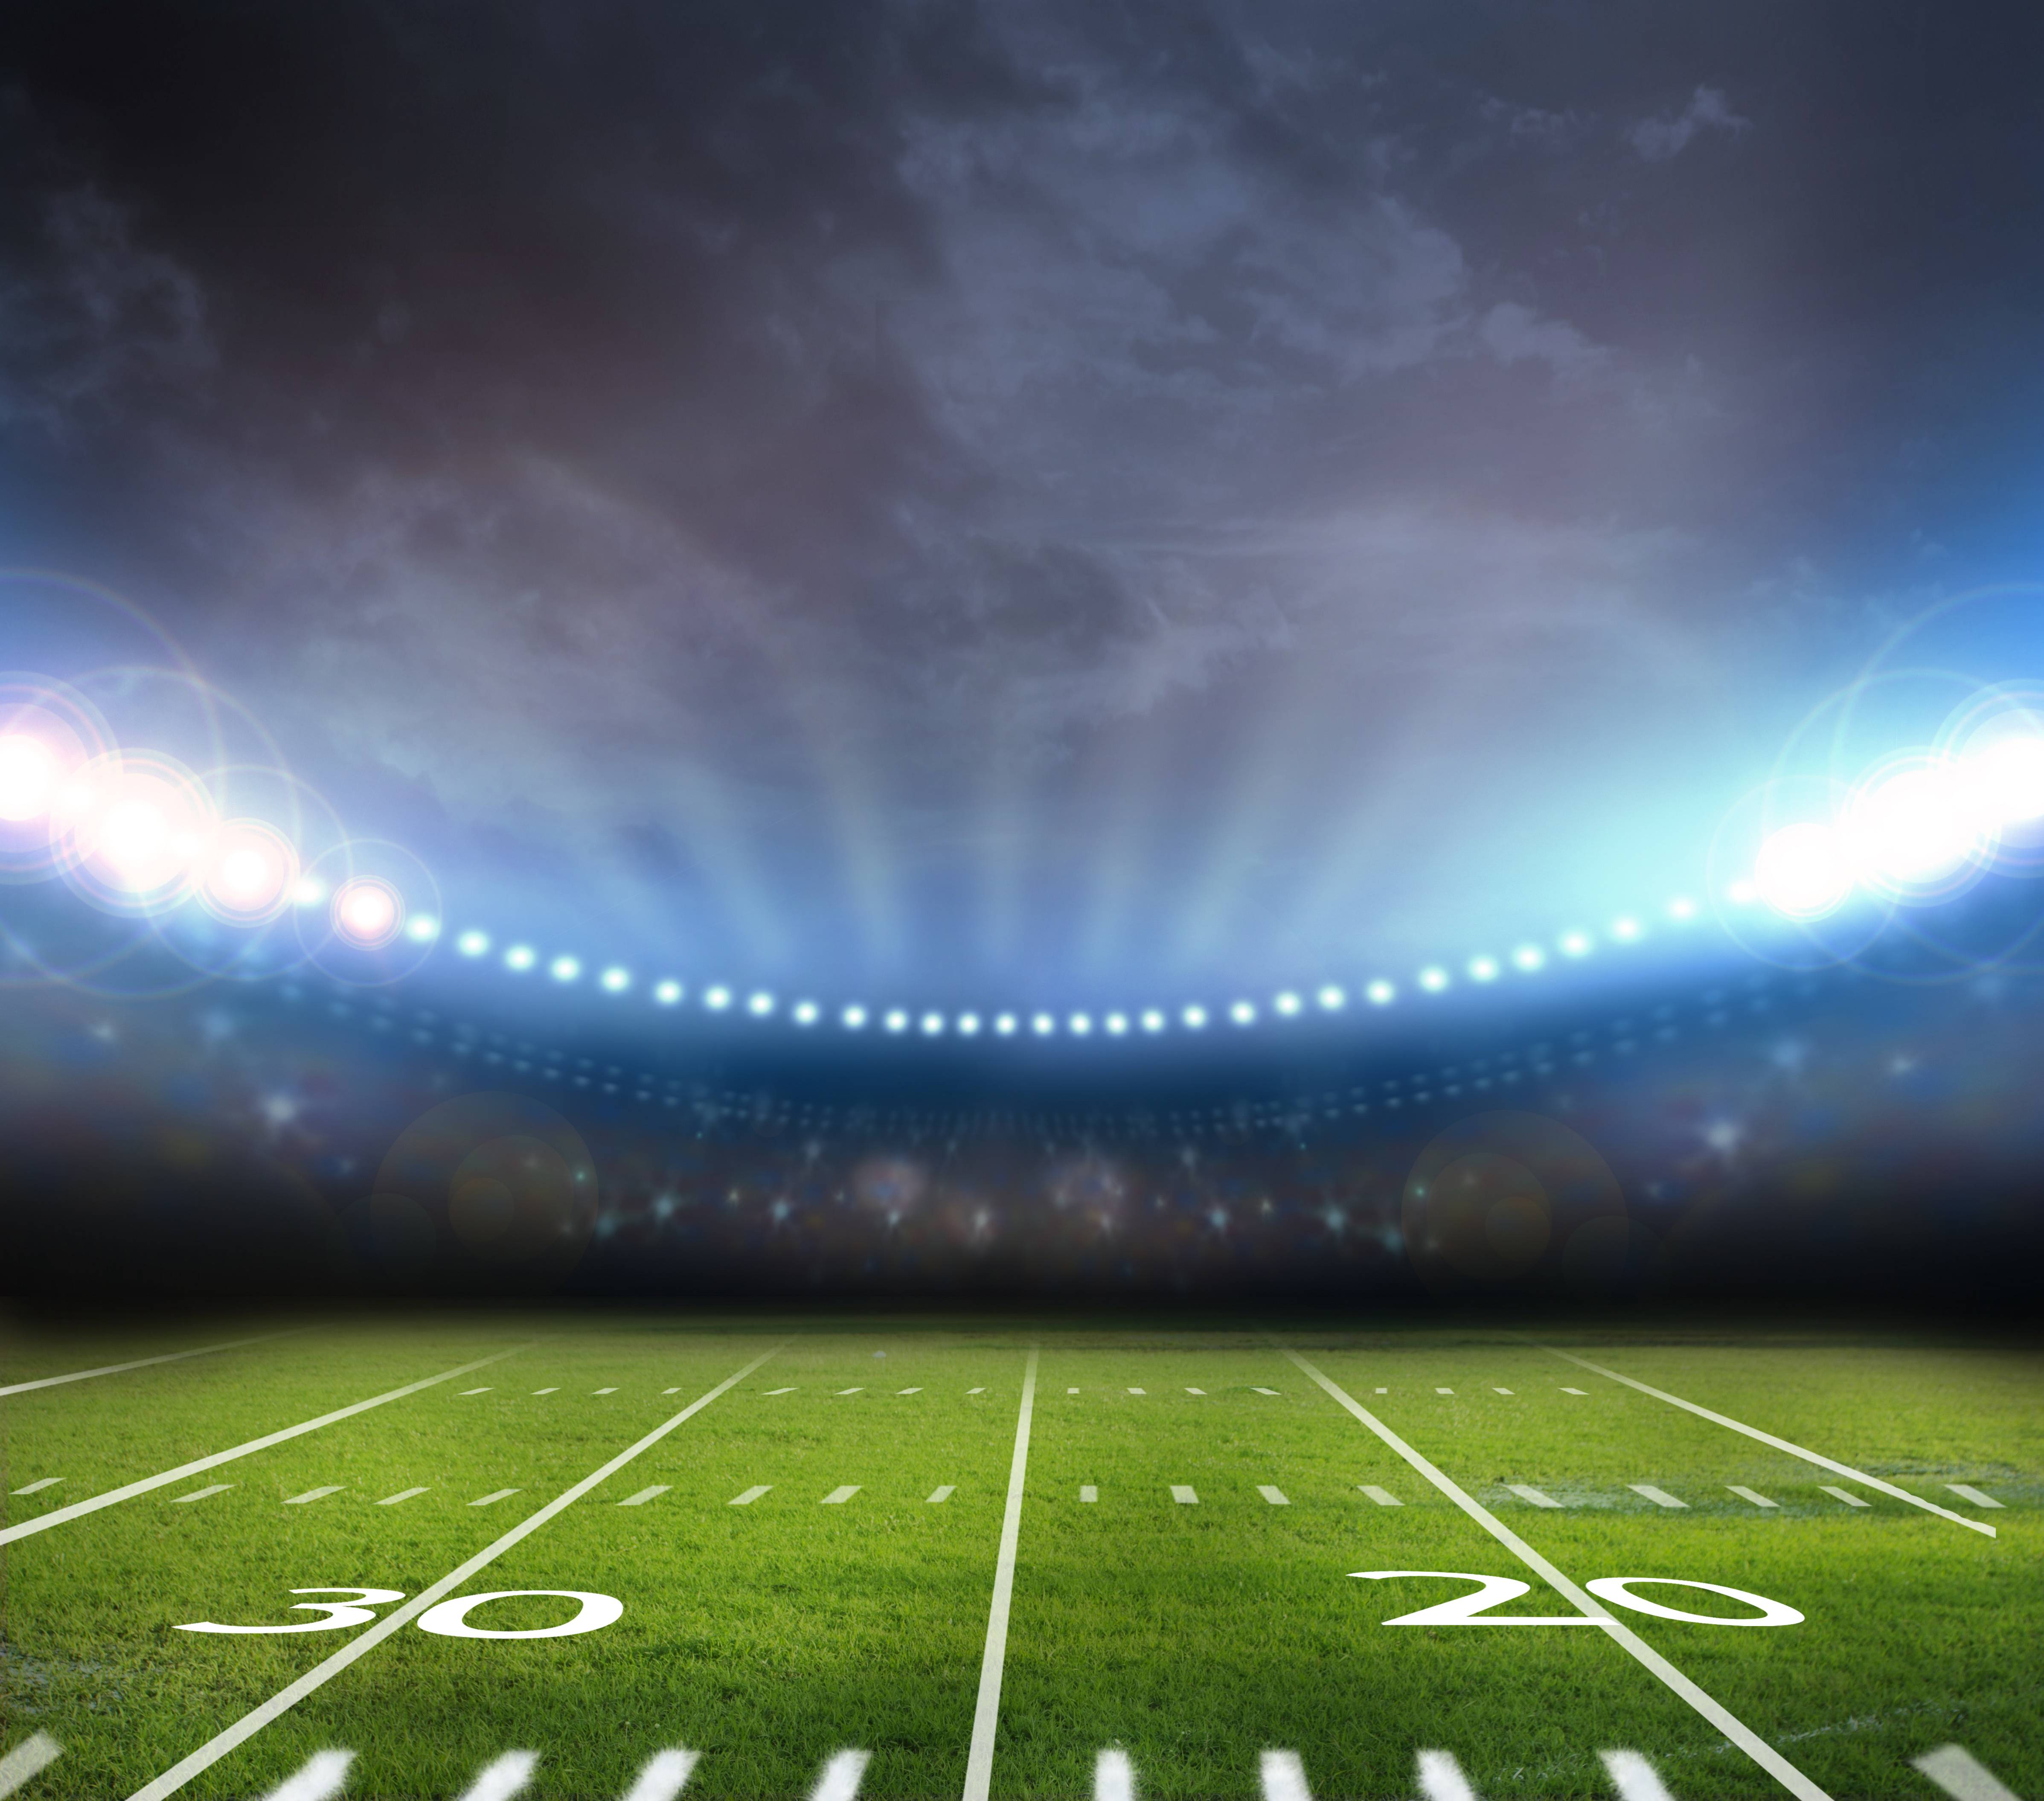 Wallpapers For > American Football Backgrounds For Photoshop